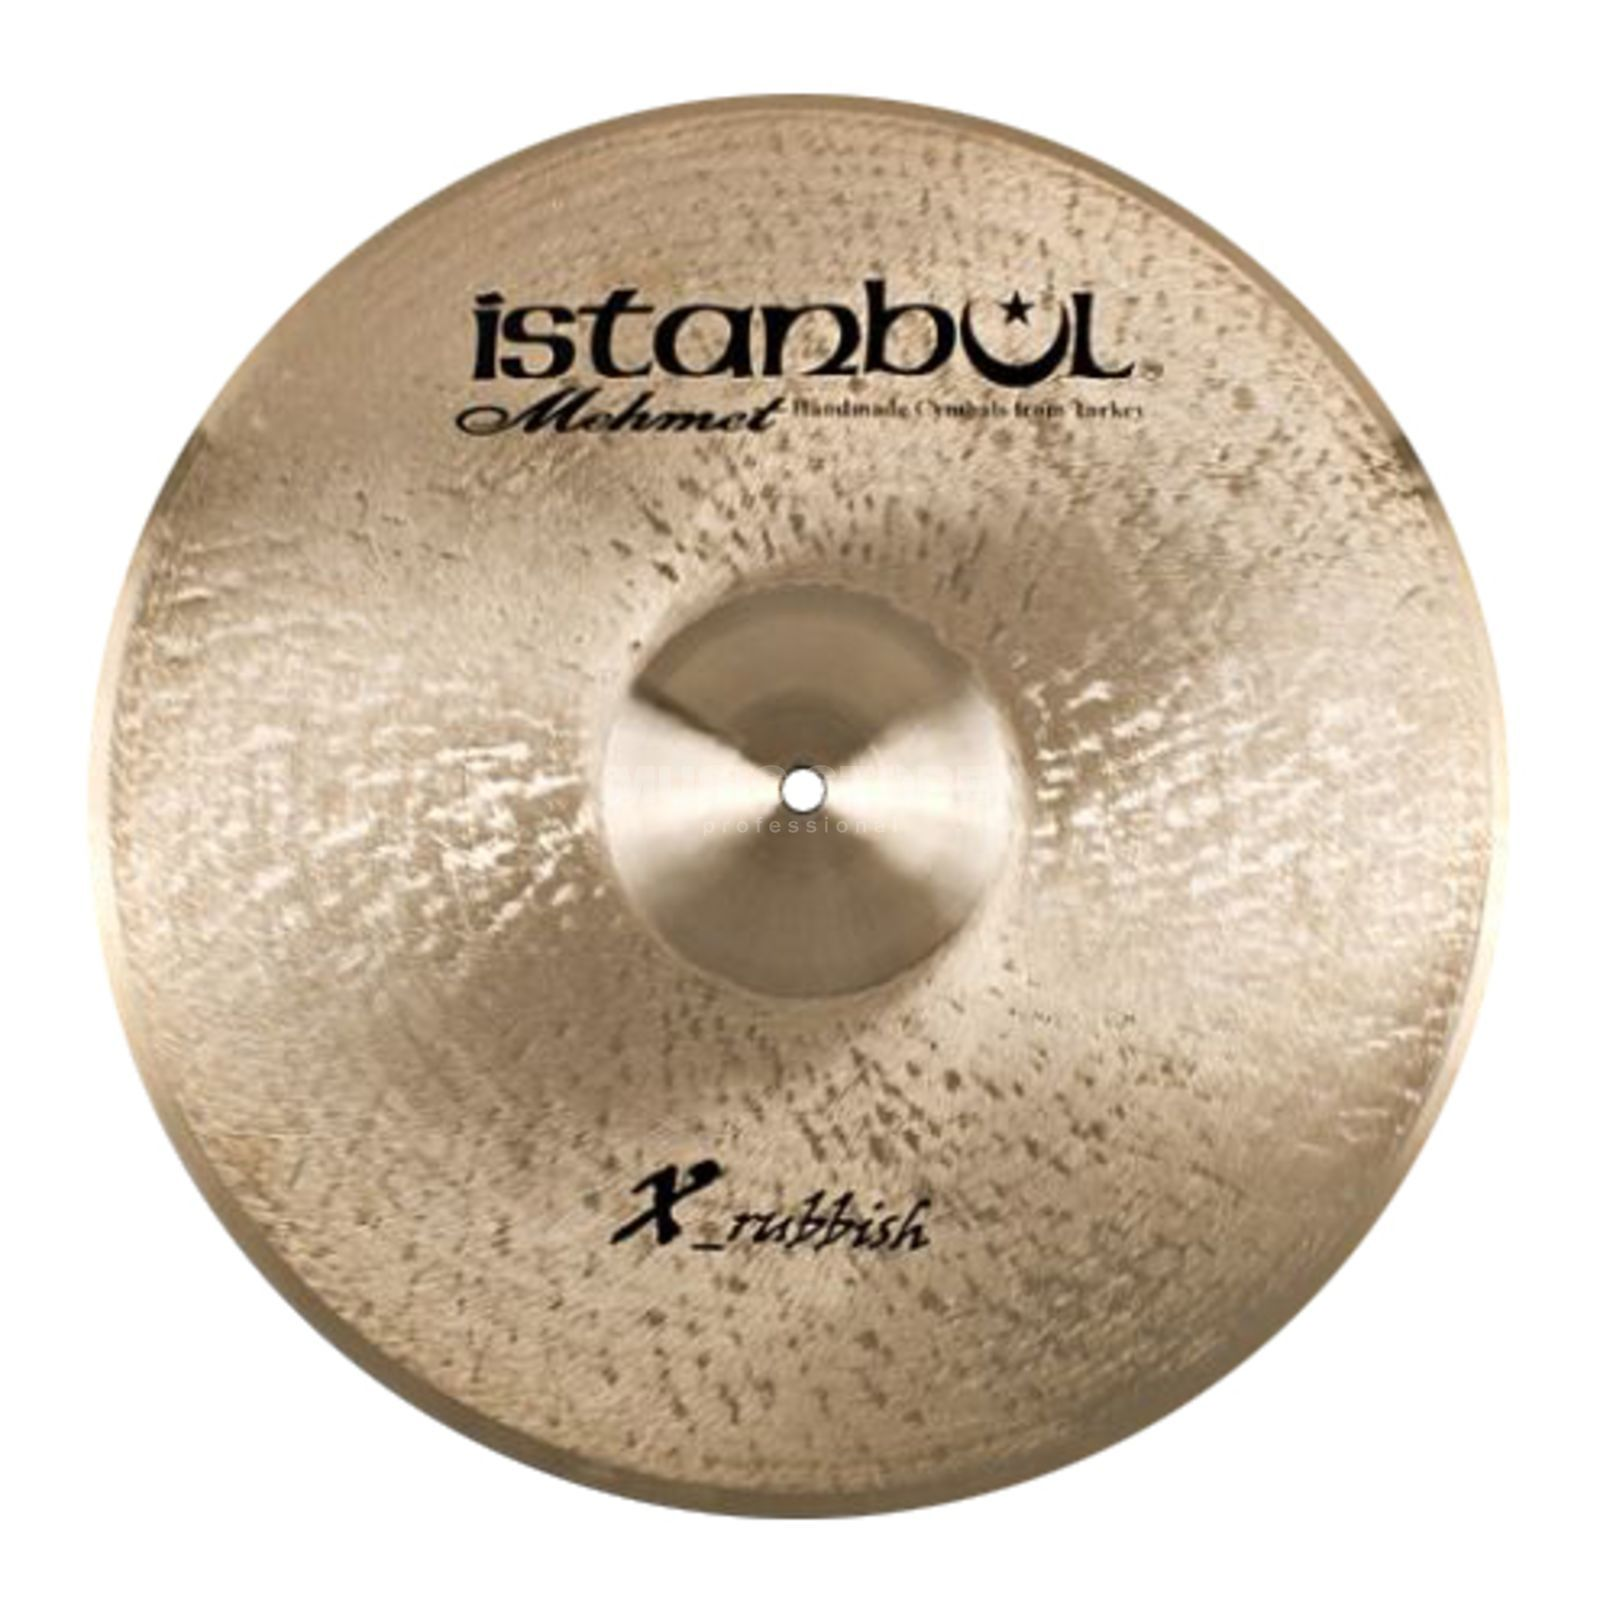 "Istanbul X-Rubbish Crash 15"", XR-C15, Overstock Product Image"